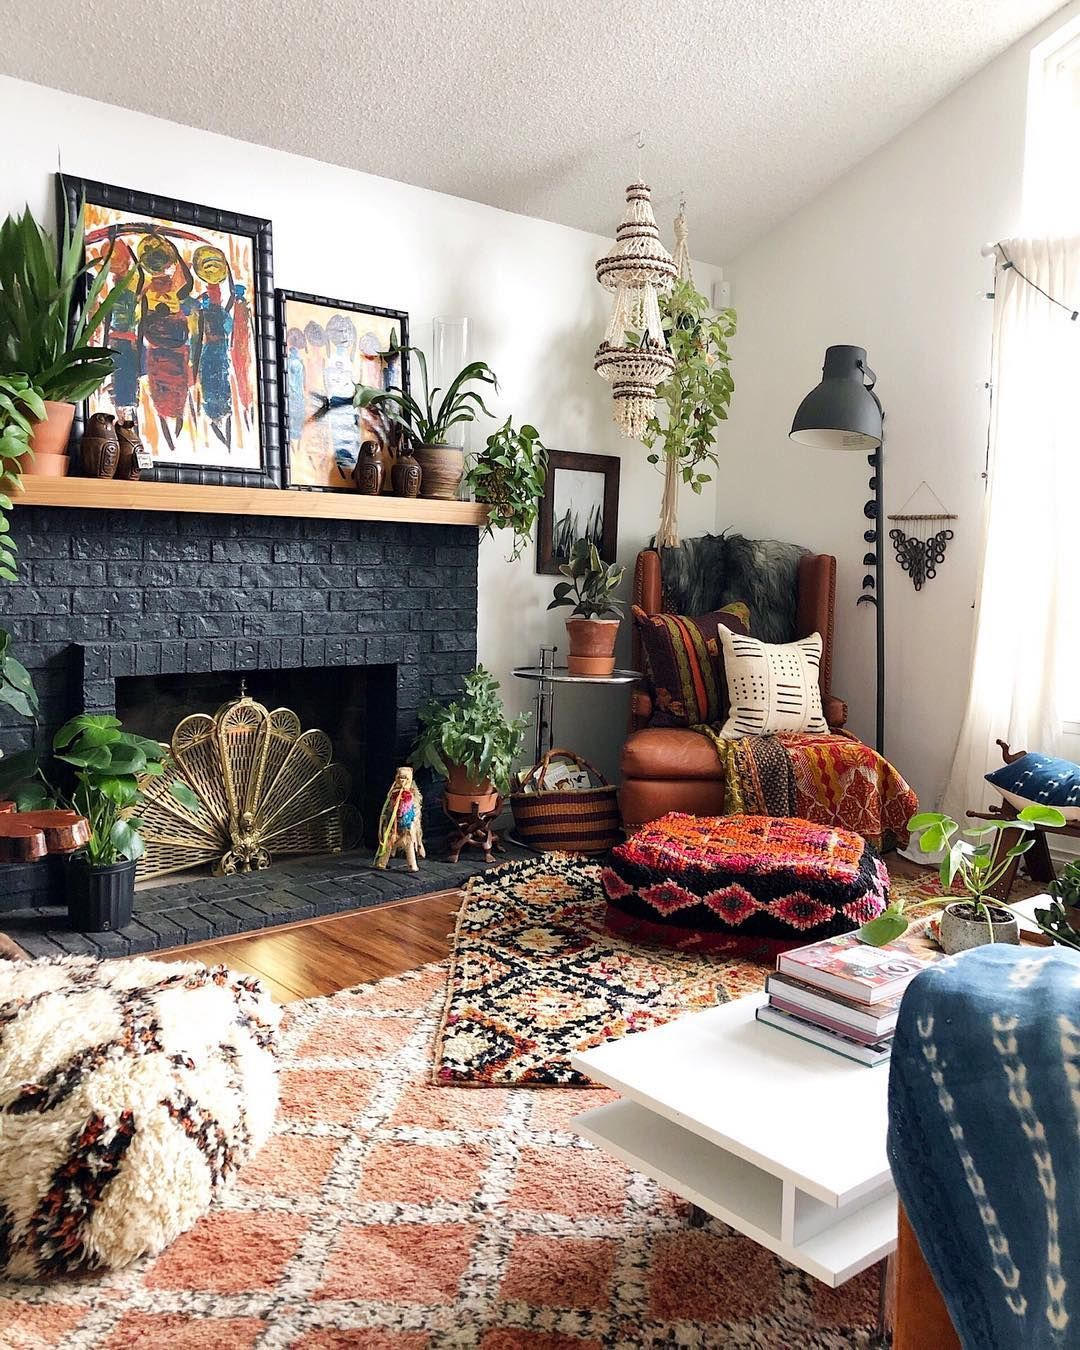 Boho comfort also what   hot on pinterest bohemian interior design ideas in rh